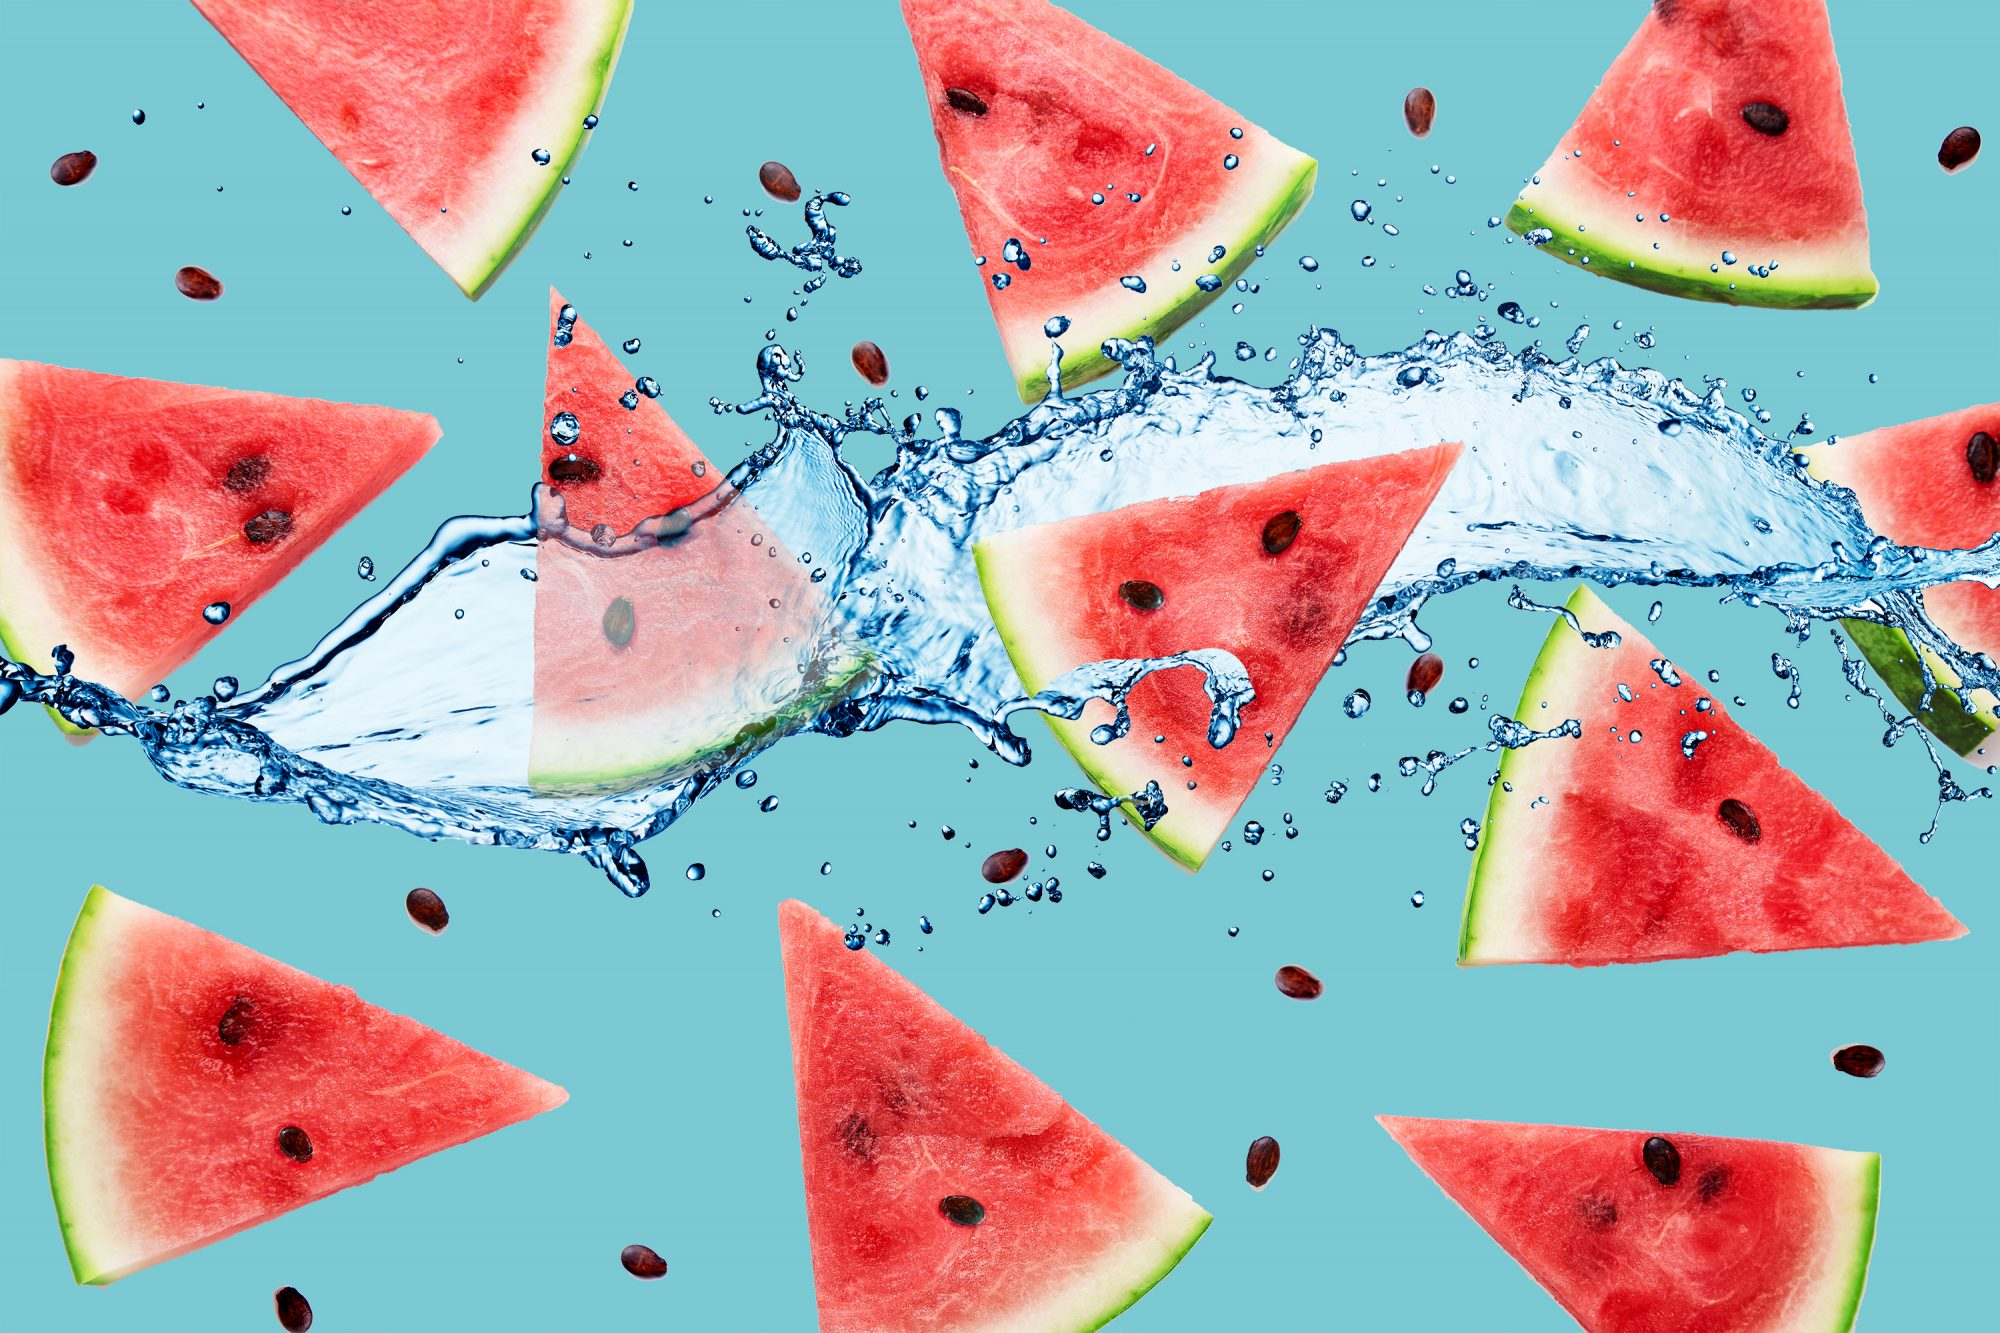 watermelon: best hydrating foods